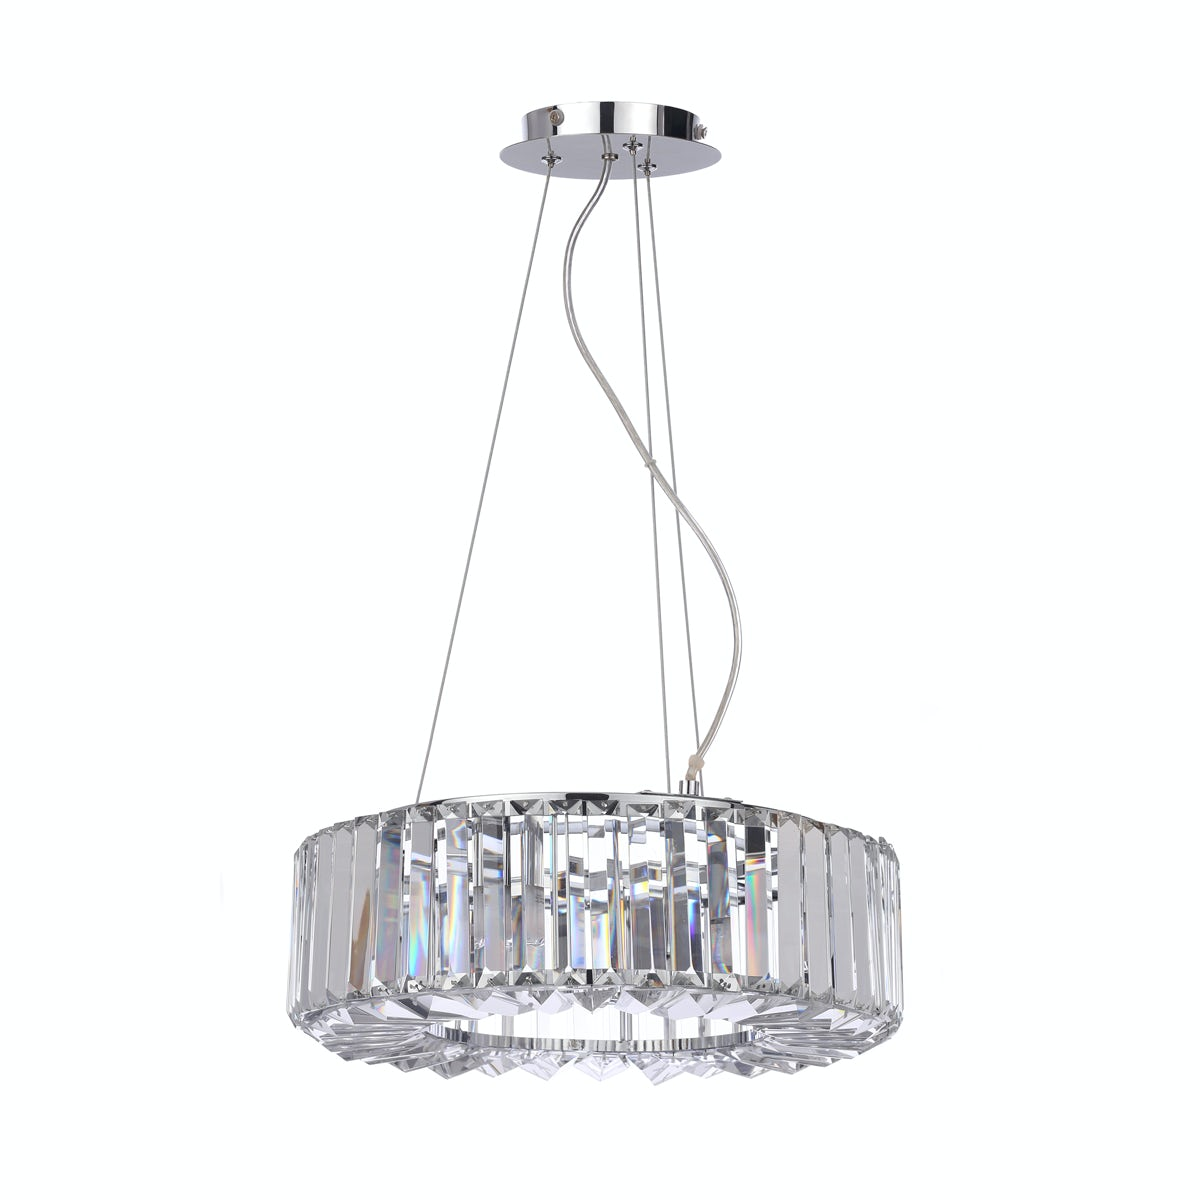 Marquis by Waterford Foyle 4 light bathroom chandelier